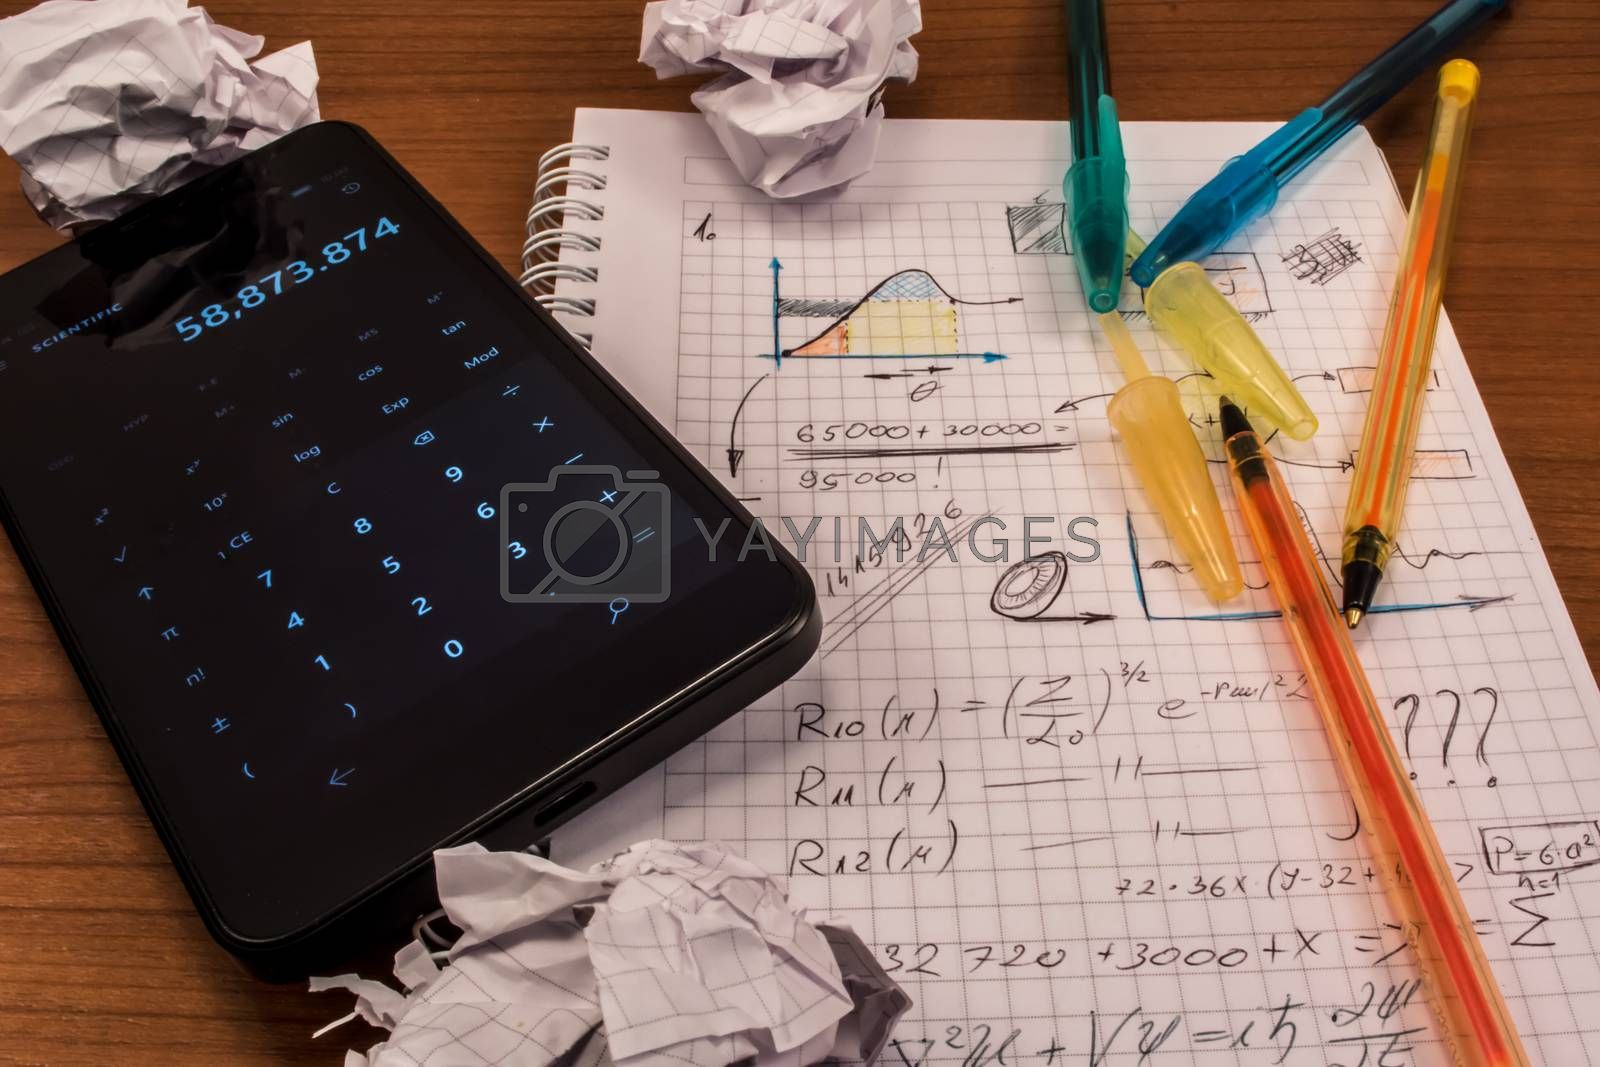 Notebook full of mathematics. Smart phone, pencils and crumpled paper are visible